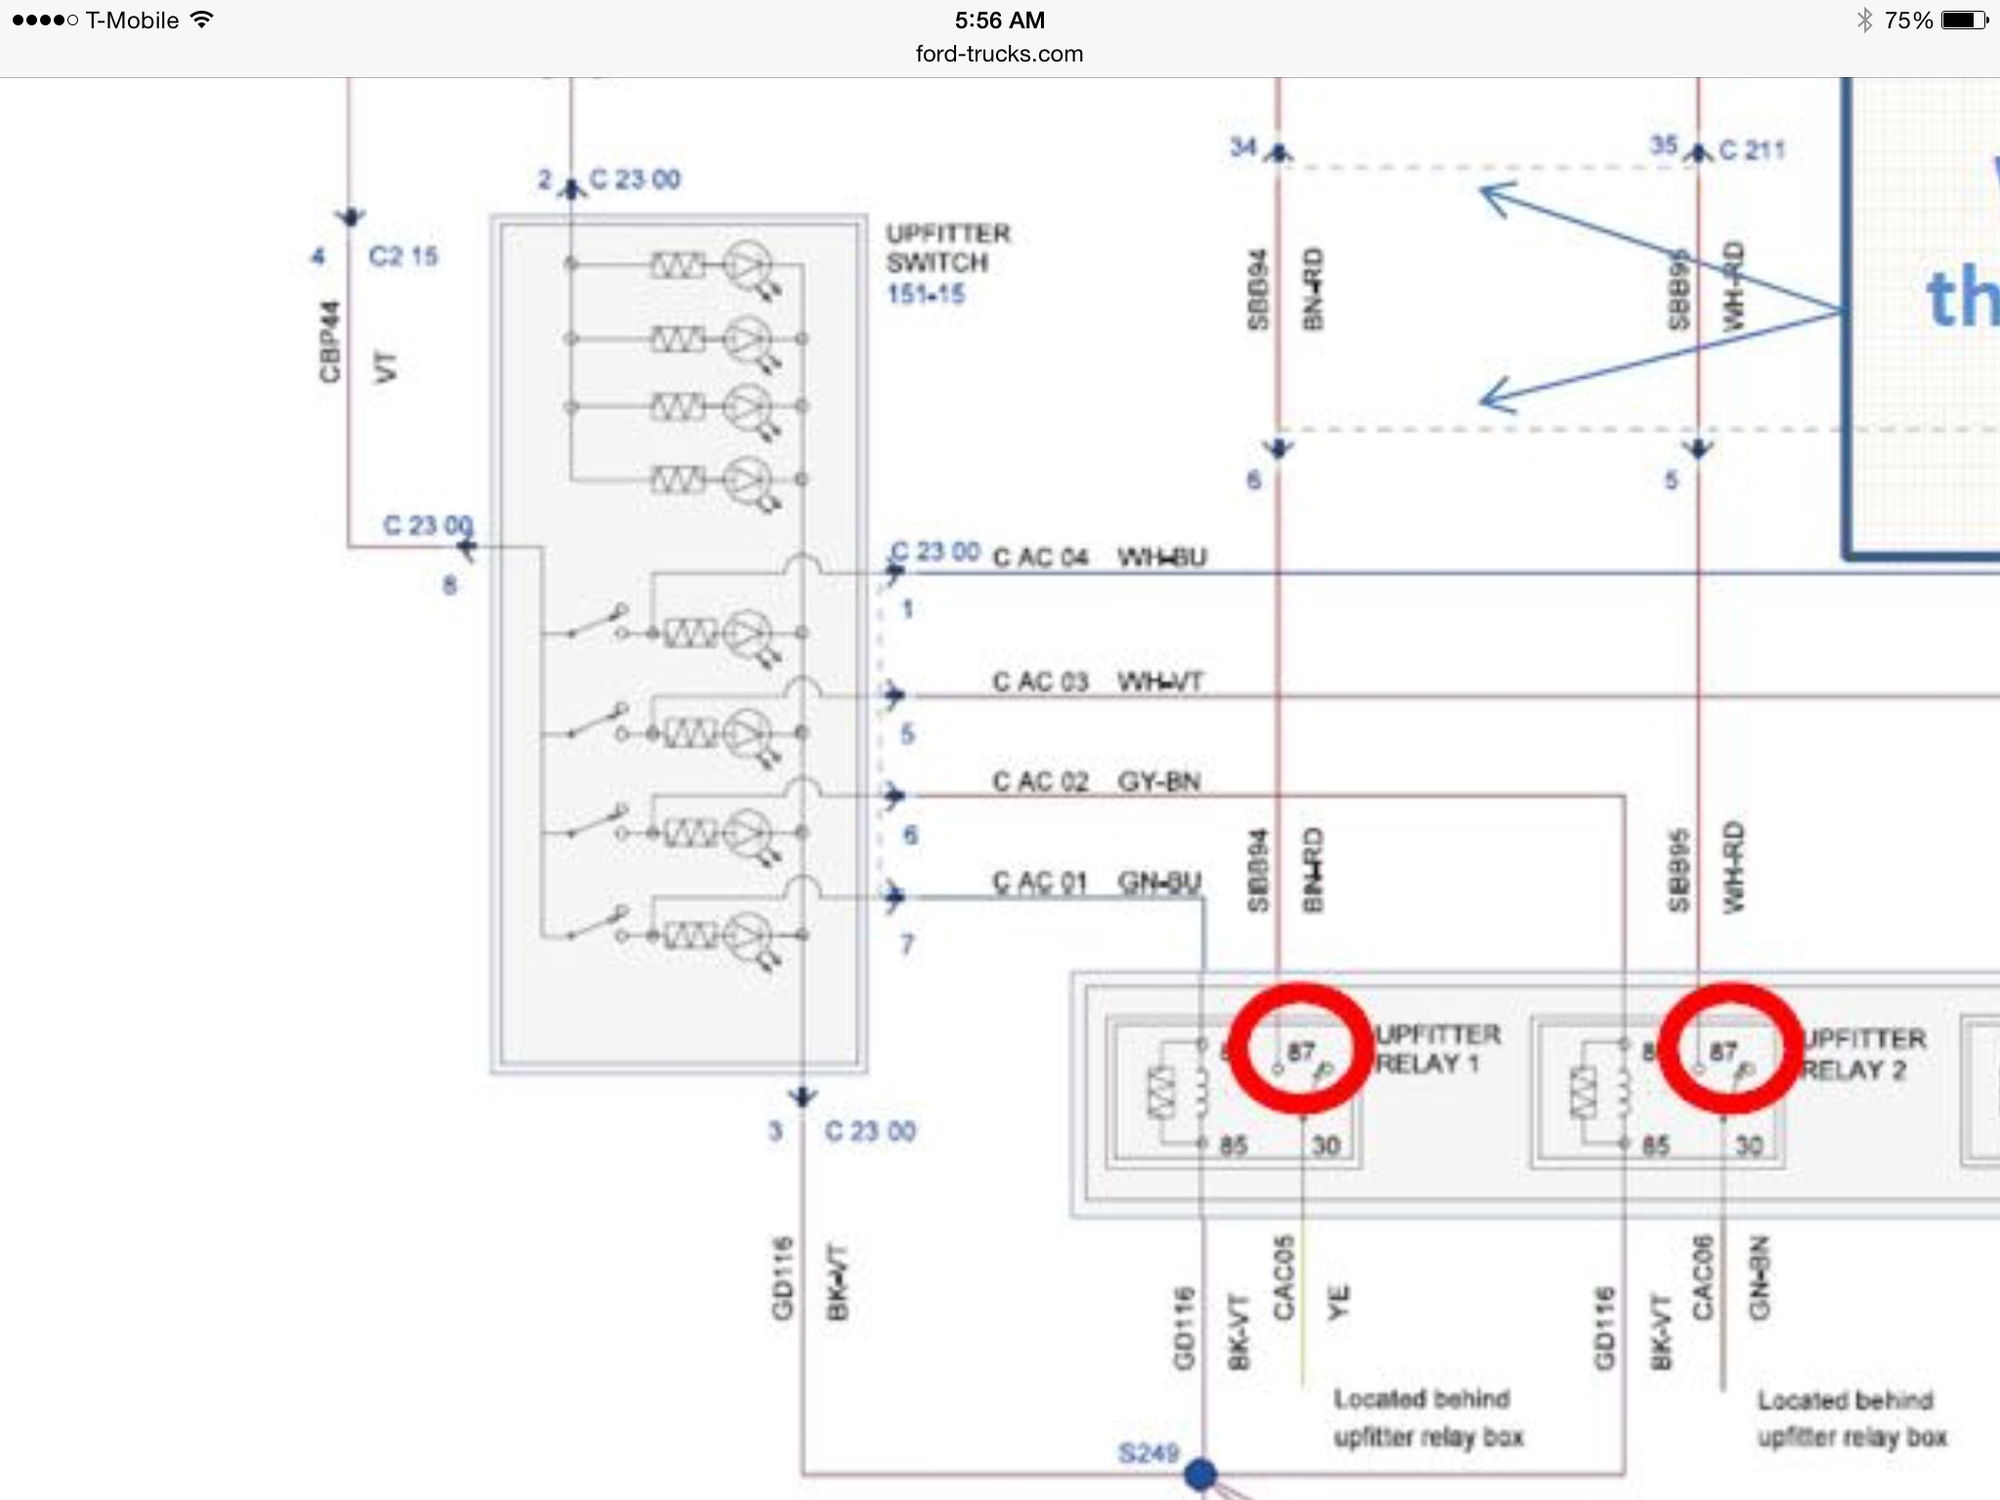 80 image_612d2faaf509226348e36137640bfa77eb9c524f 2015 upfitter wiring diagram help f250 ford truck enthusiasts forums ford raptor aux switch wiring diagram at love-stories.co